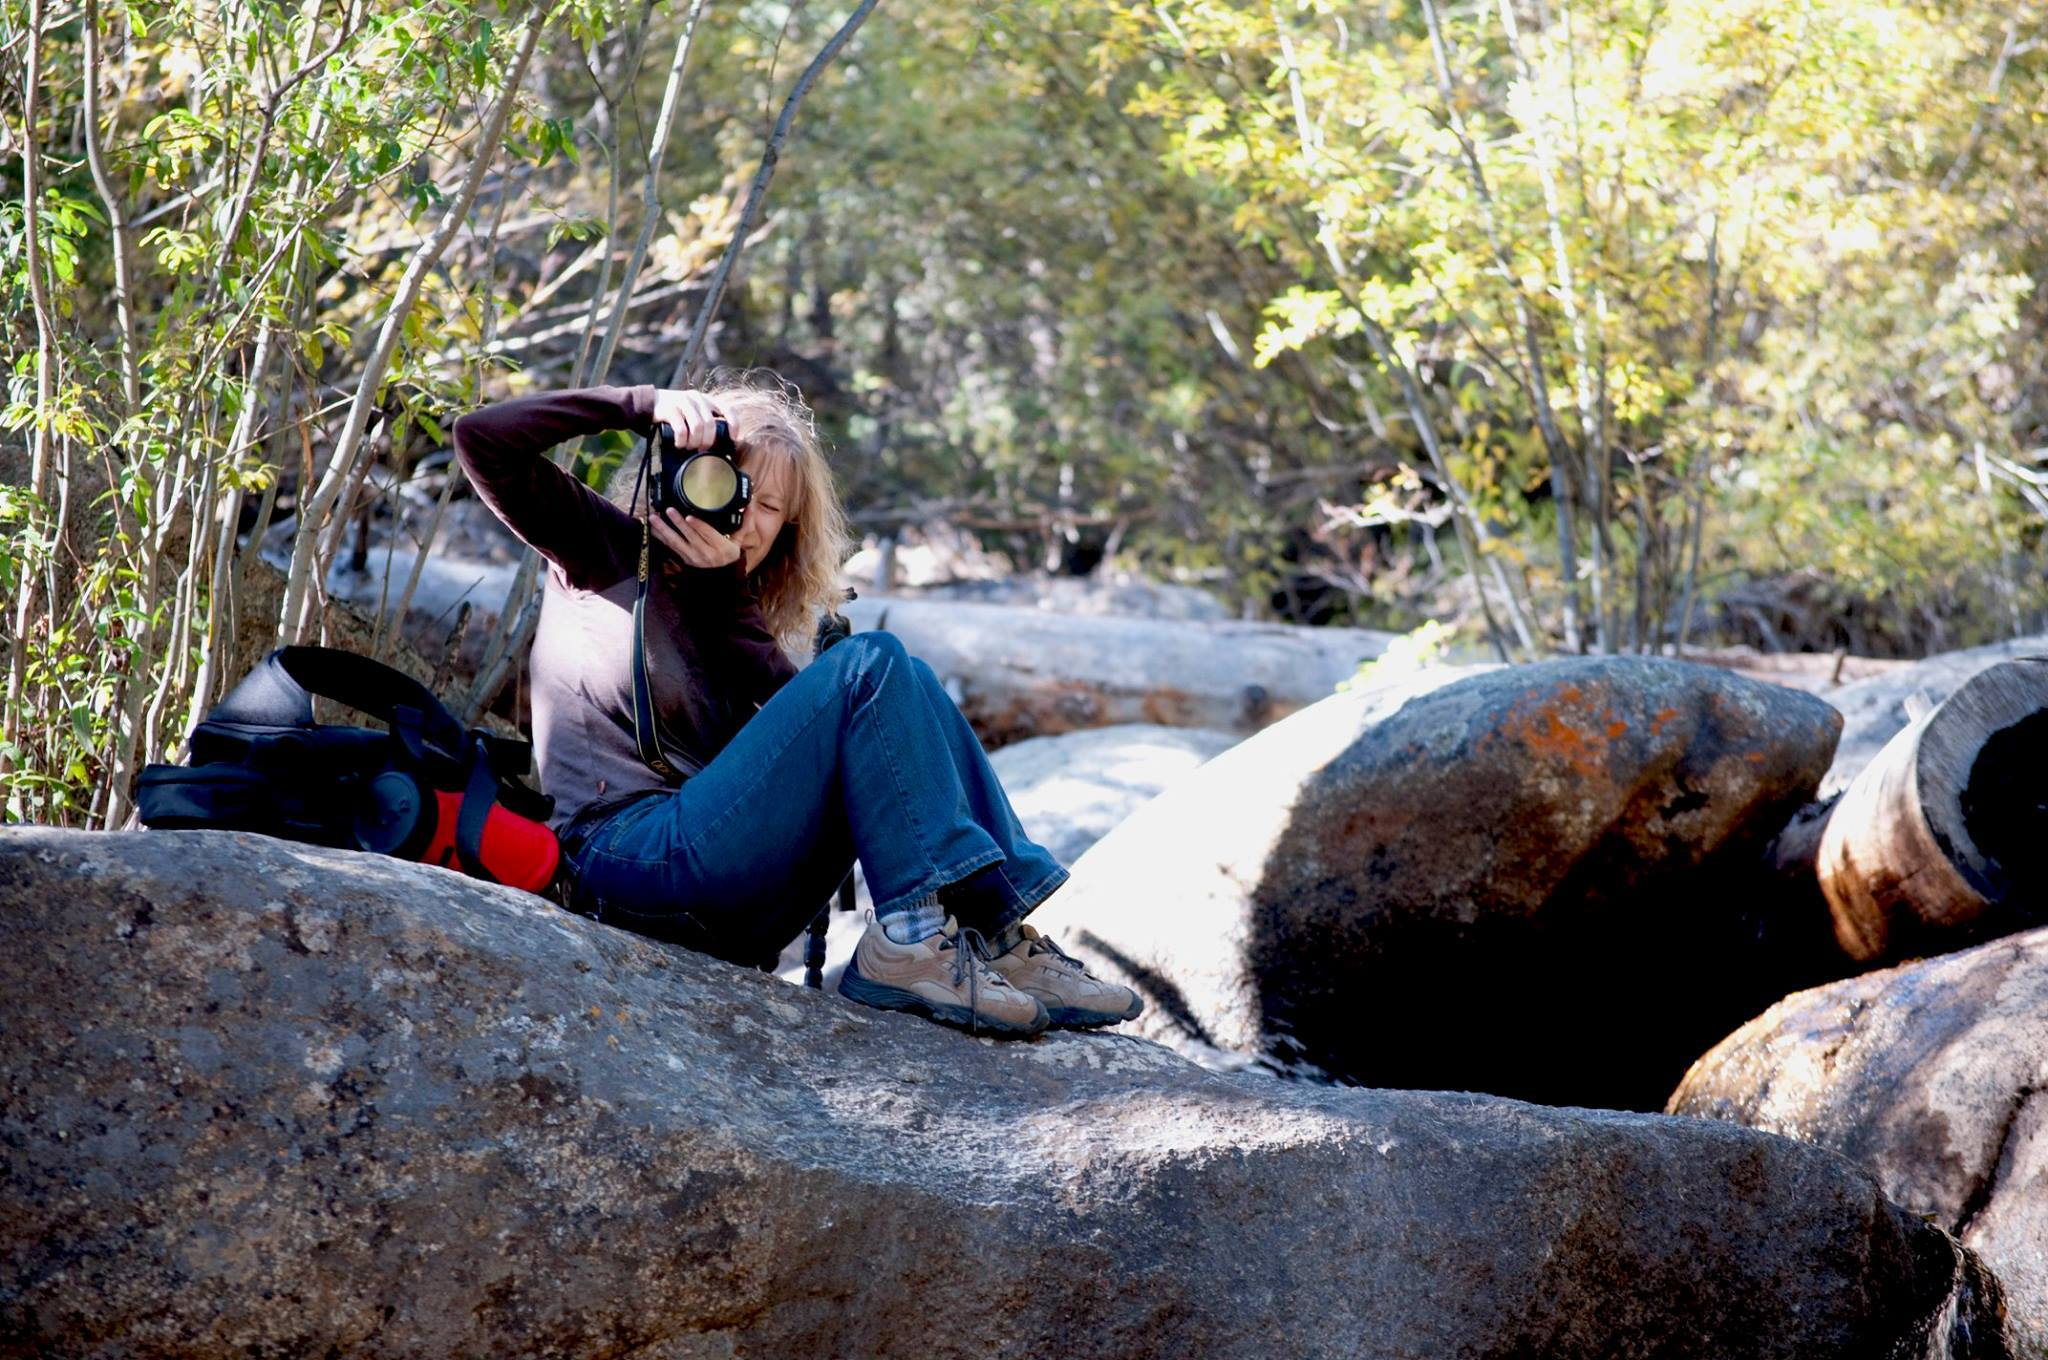 Christine Miller - Christine is a creative photographer with an eye for the details that surround us and whose work has been purchased by individuals, hospitals and businesses in creating a unique ambiance for each across the United States.